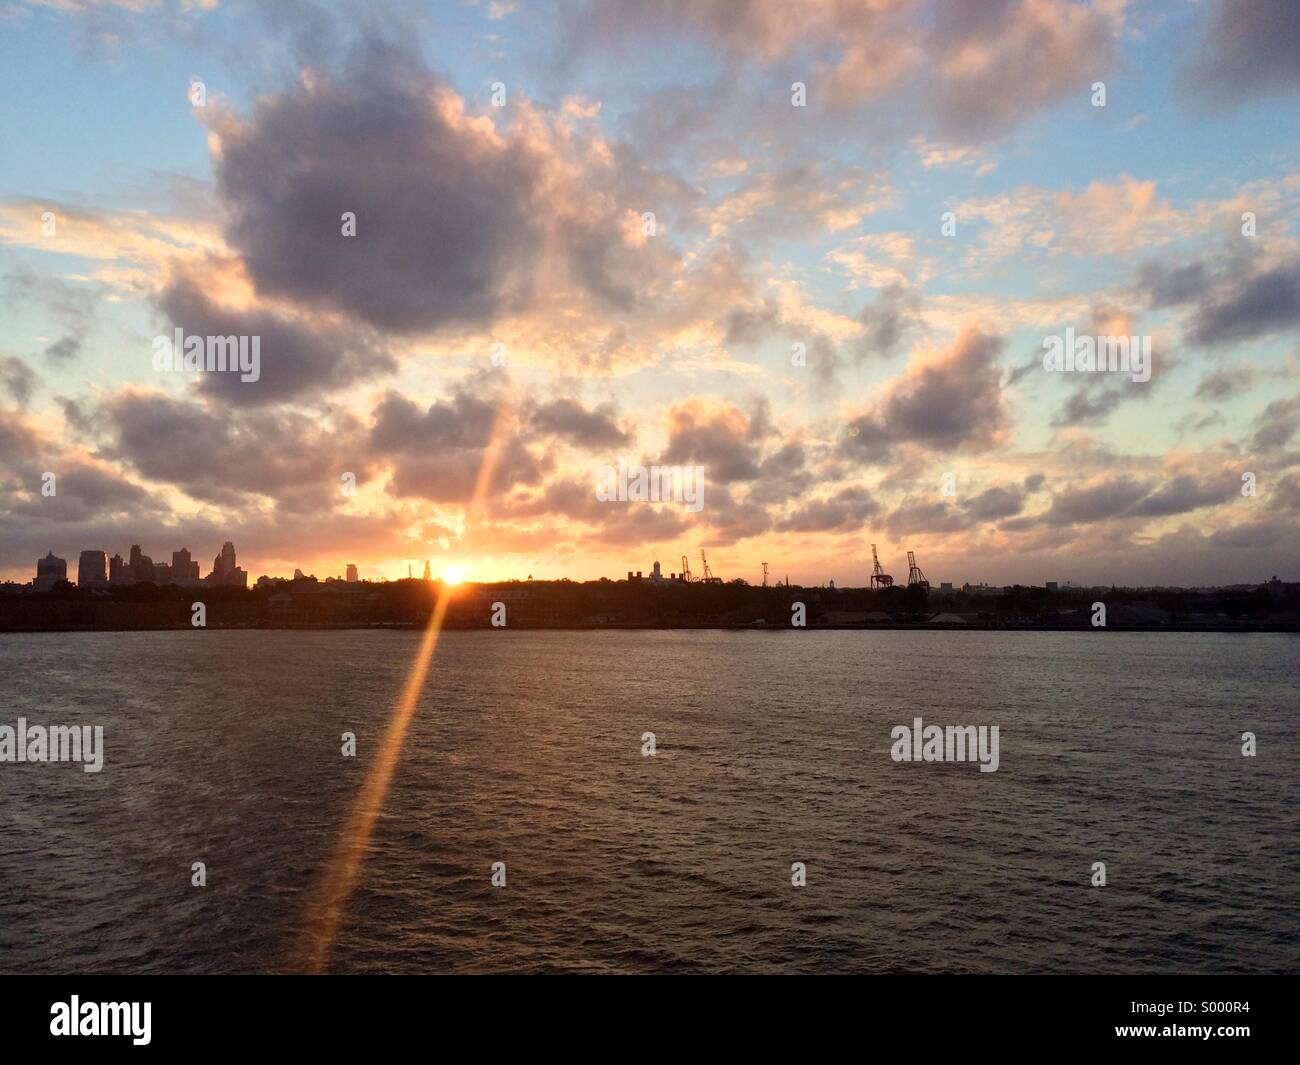 Sunrise over Brooklyn and the Hudson River. - Stock Image